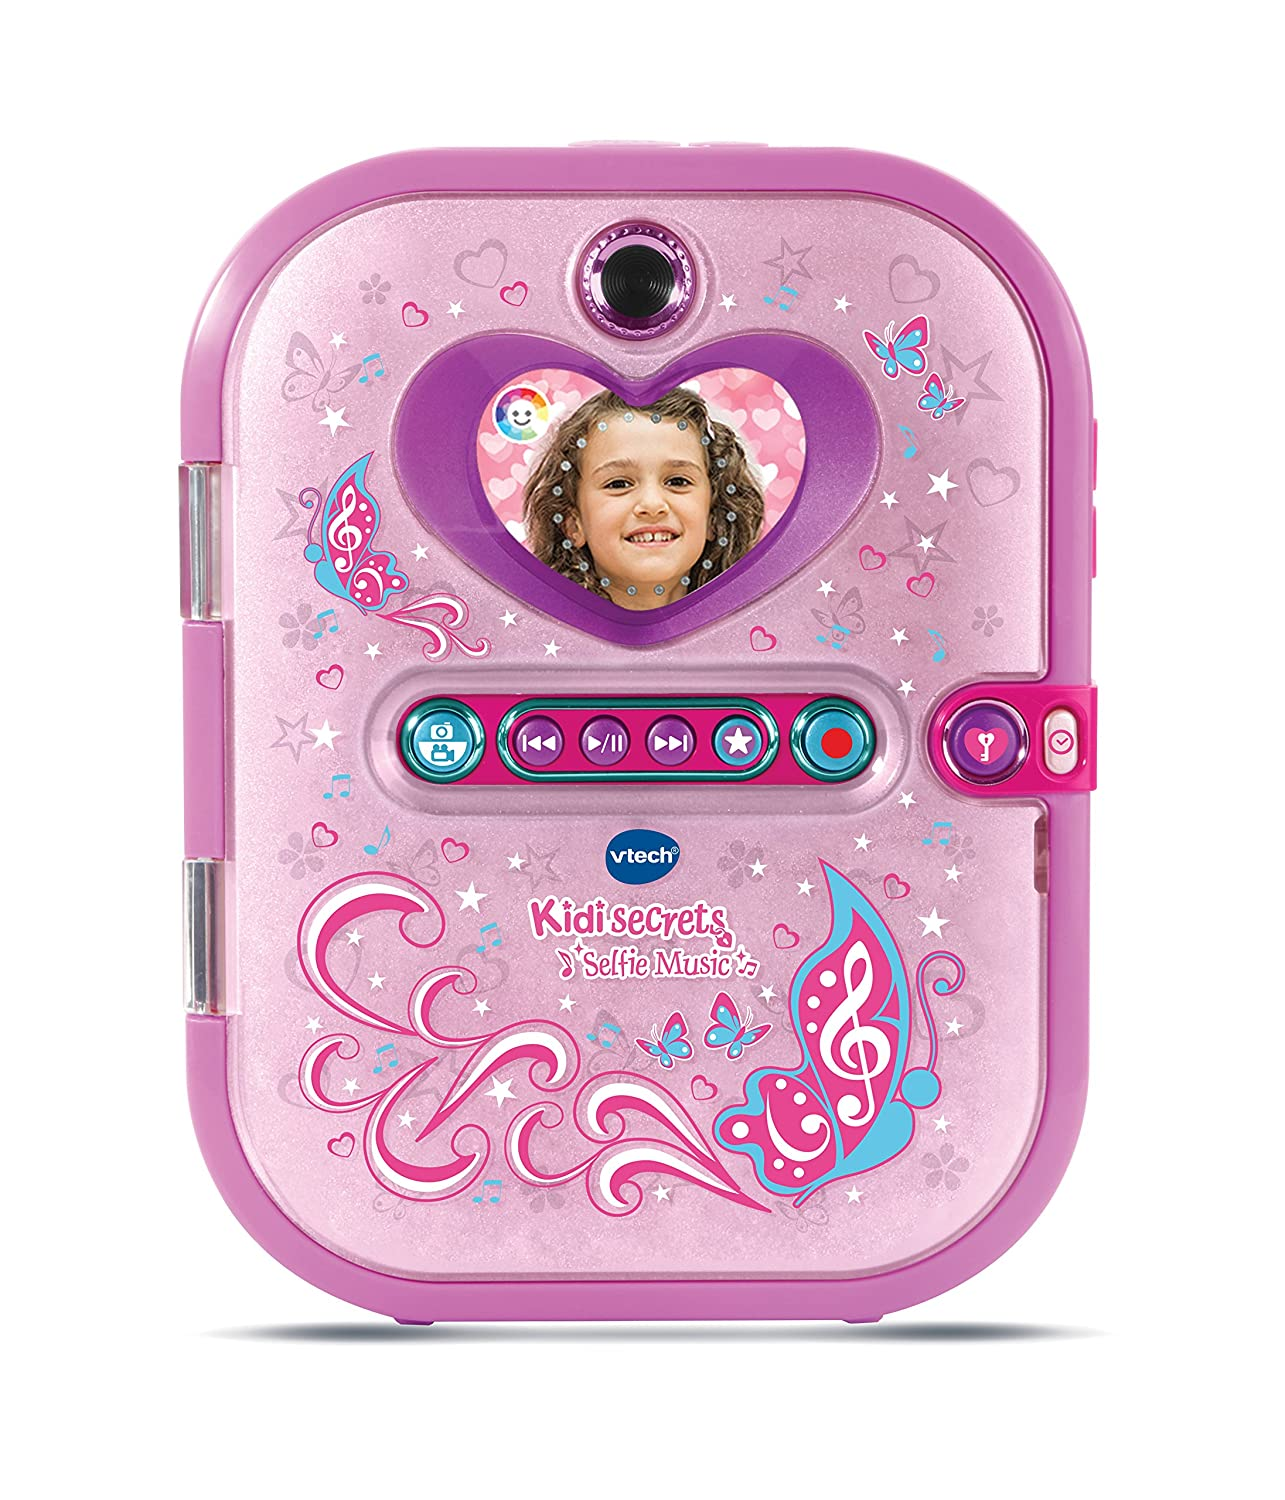 VTech - Kidisecrets Selfie Music Agenda Électronique, 163605, Rose